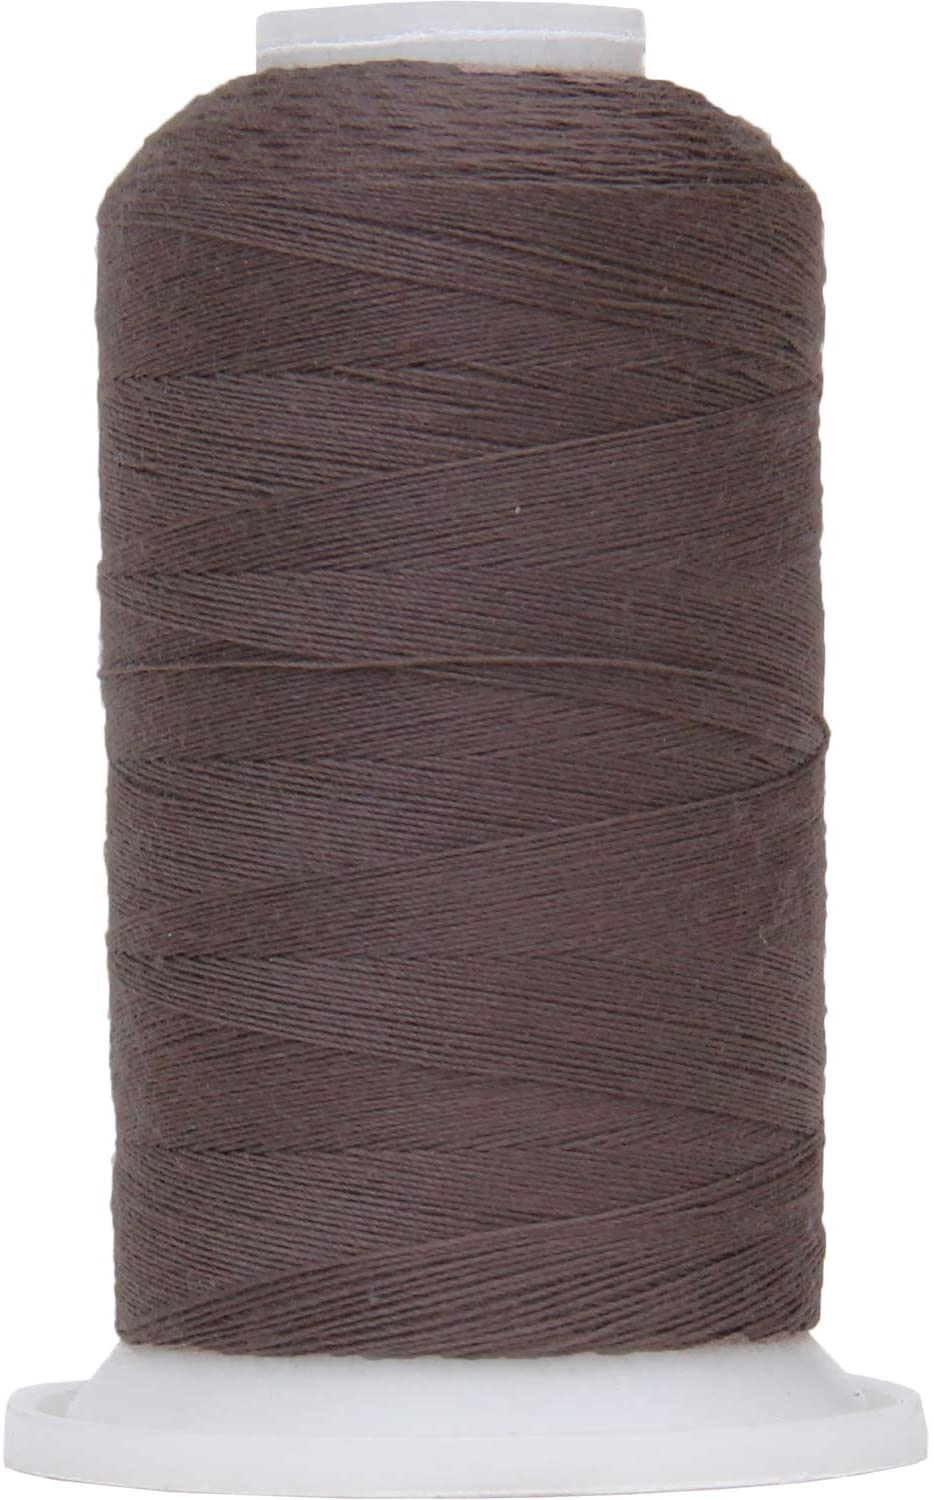 Threadart Polyester All-Purpose Sewing Thread - 600m - 50S/3 - Taupe